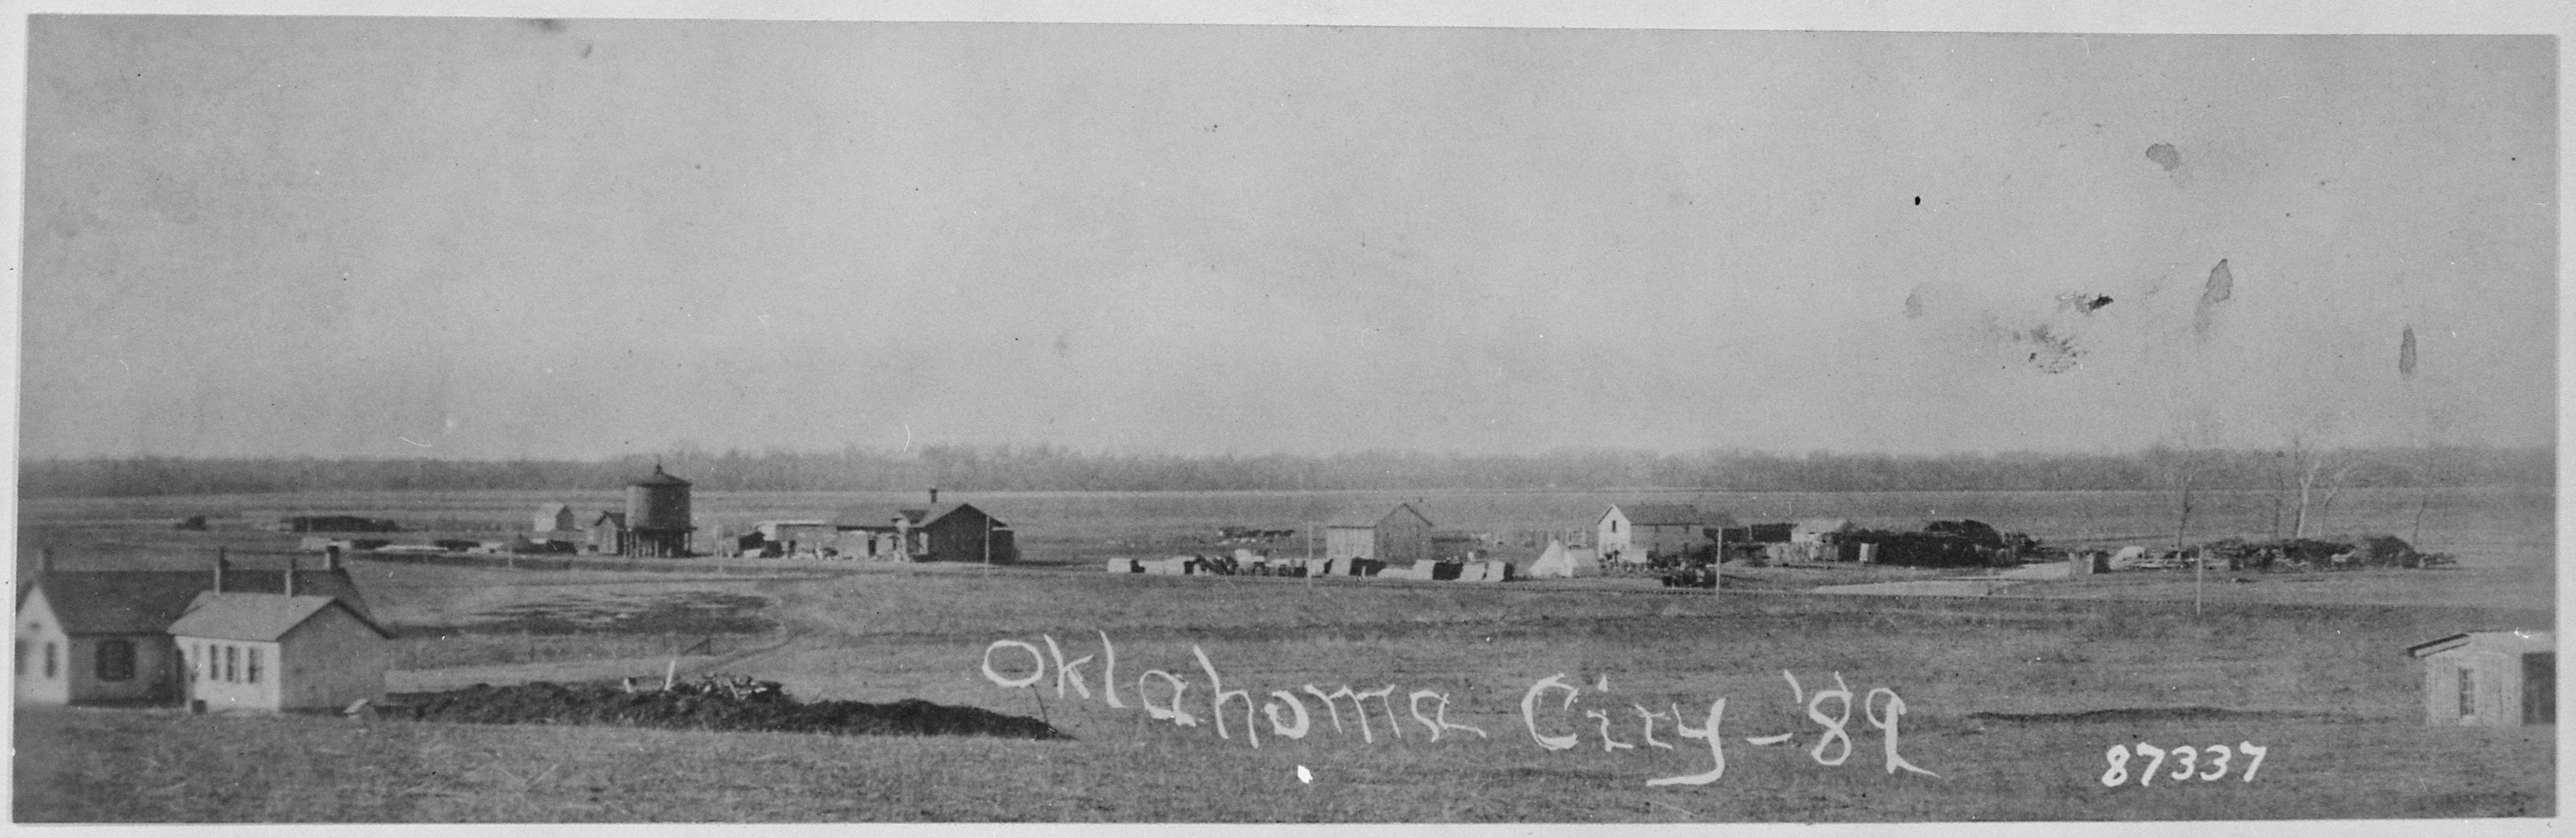 Oklahoma City Indian Community